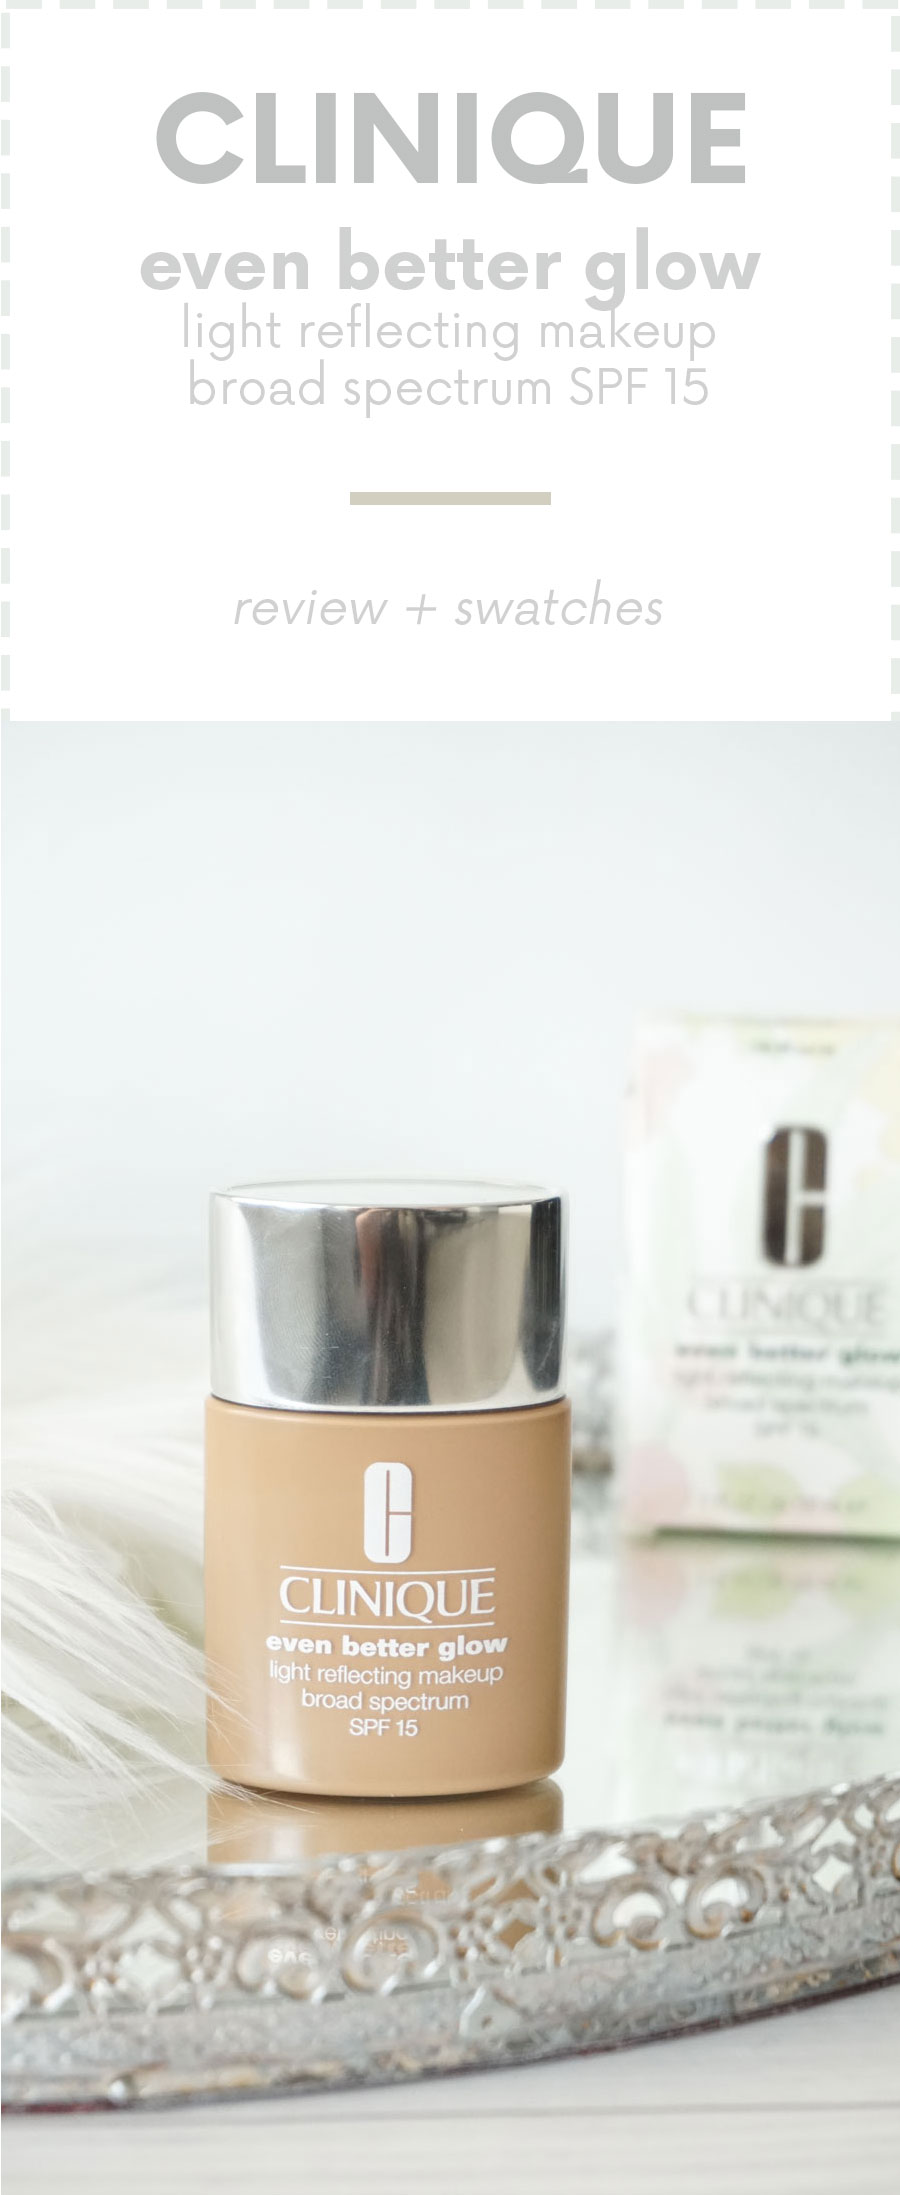 Clinique even better makeup foundation review swatches before - I Couldn T Wait To Give This A Try Clinique Even Better Glow Foundation